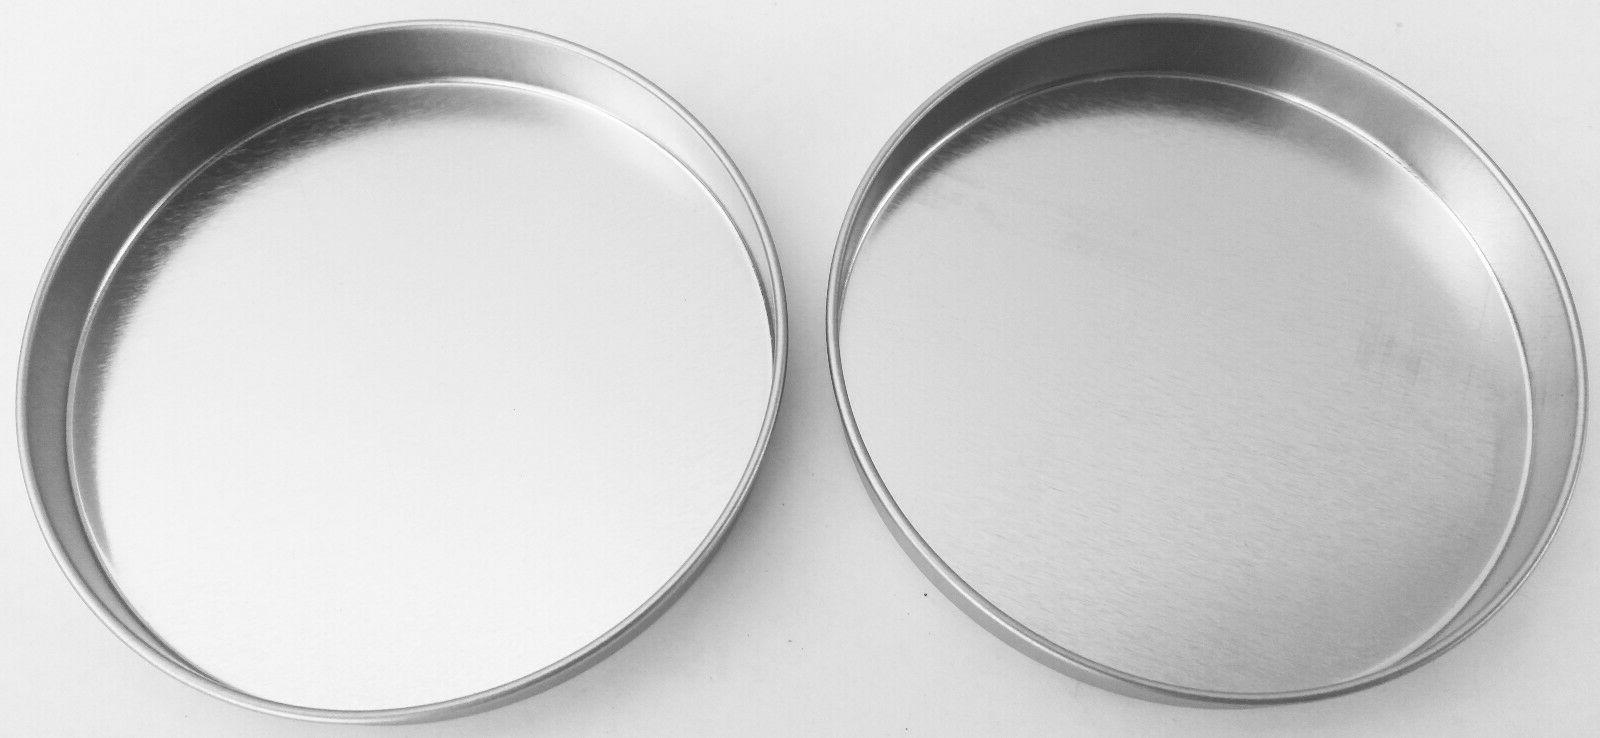 round cake pan for easy bake oven